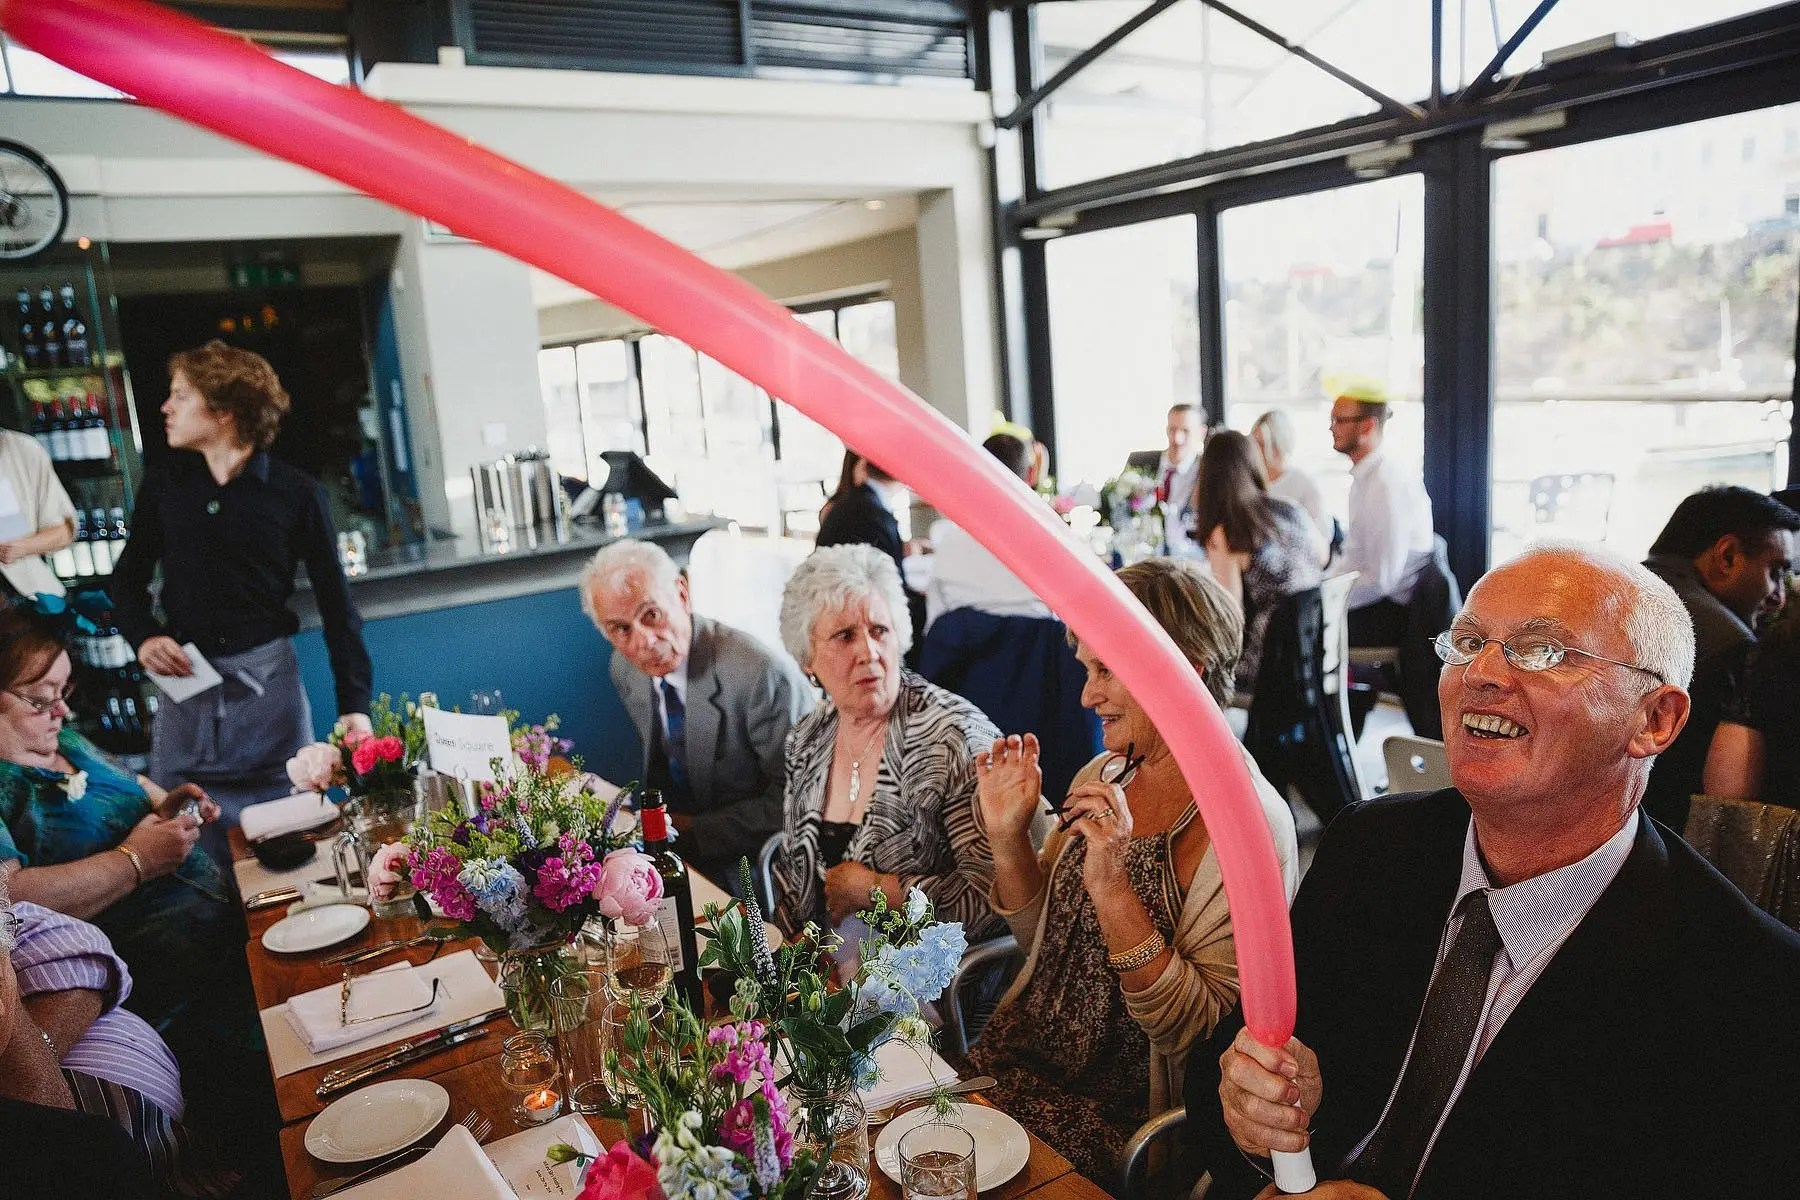 man with rubber balloon at a wedding